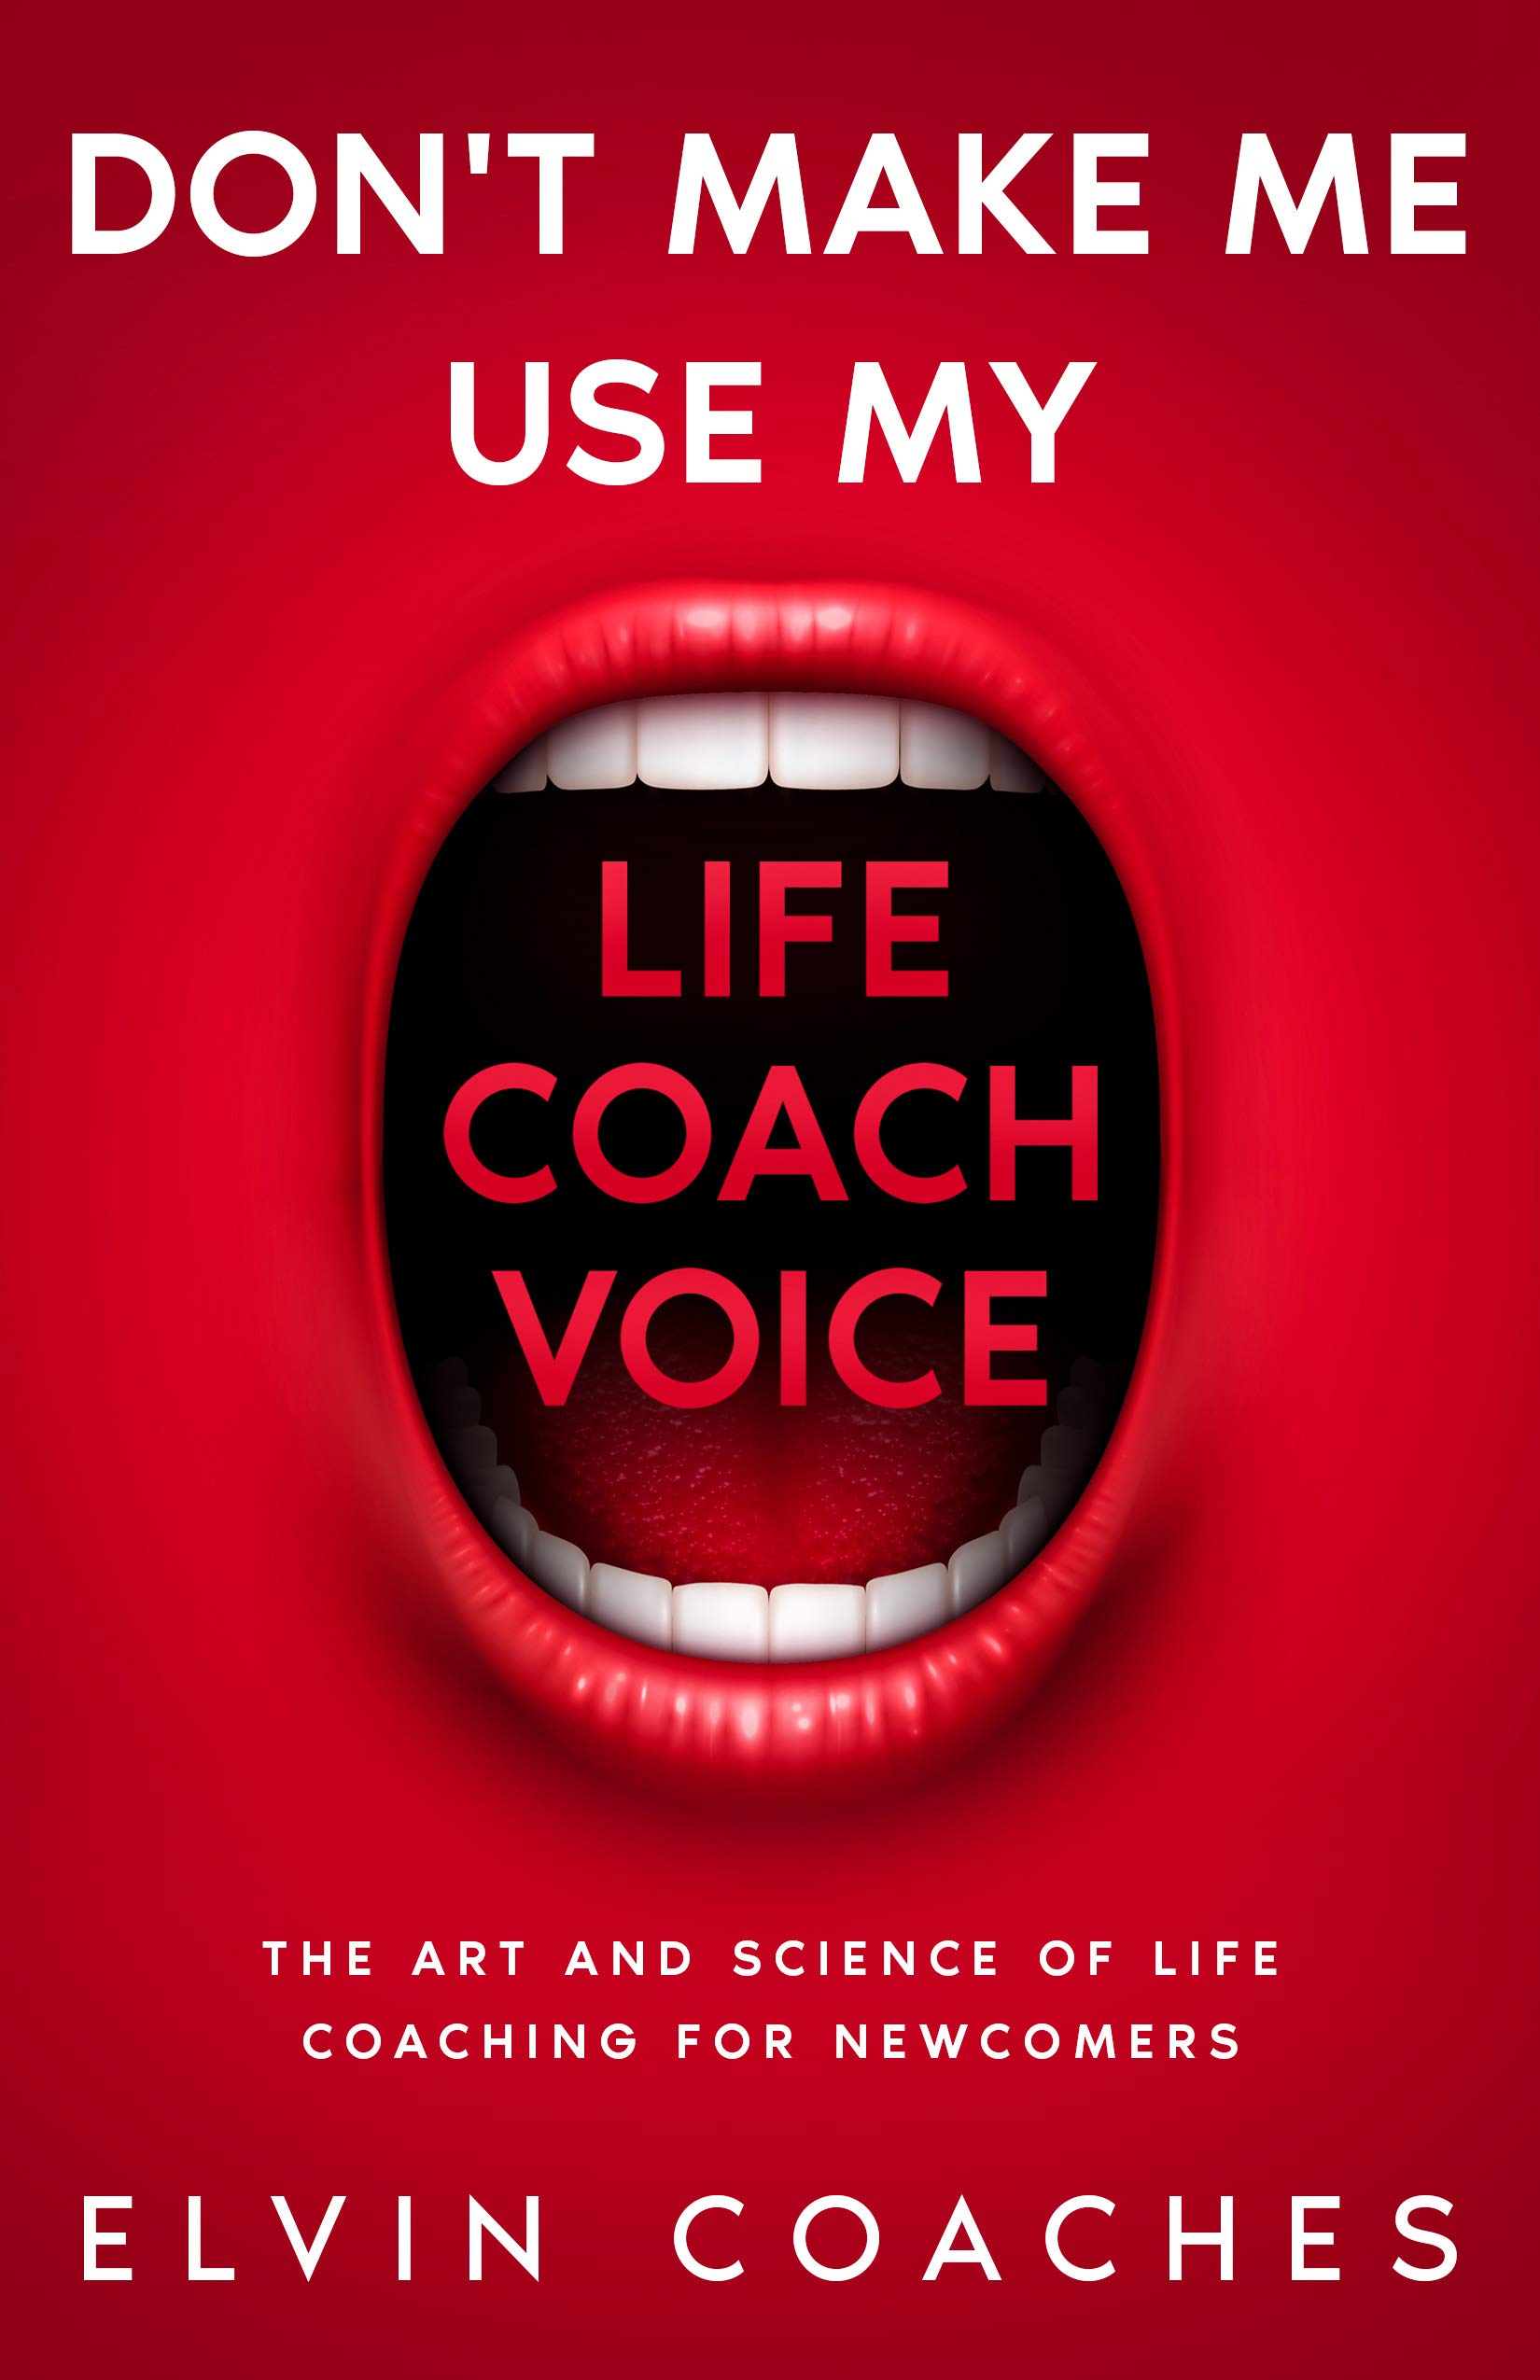 Don't make me use my Life Coach Voice: The Art and Science of Life Coaching for Newcomers